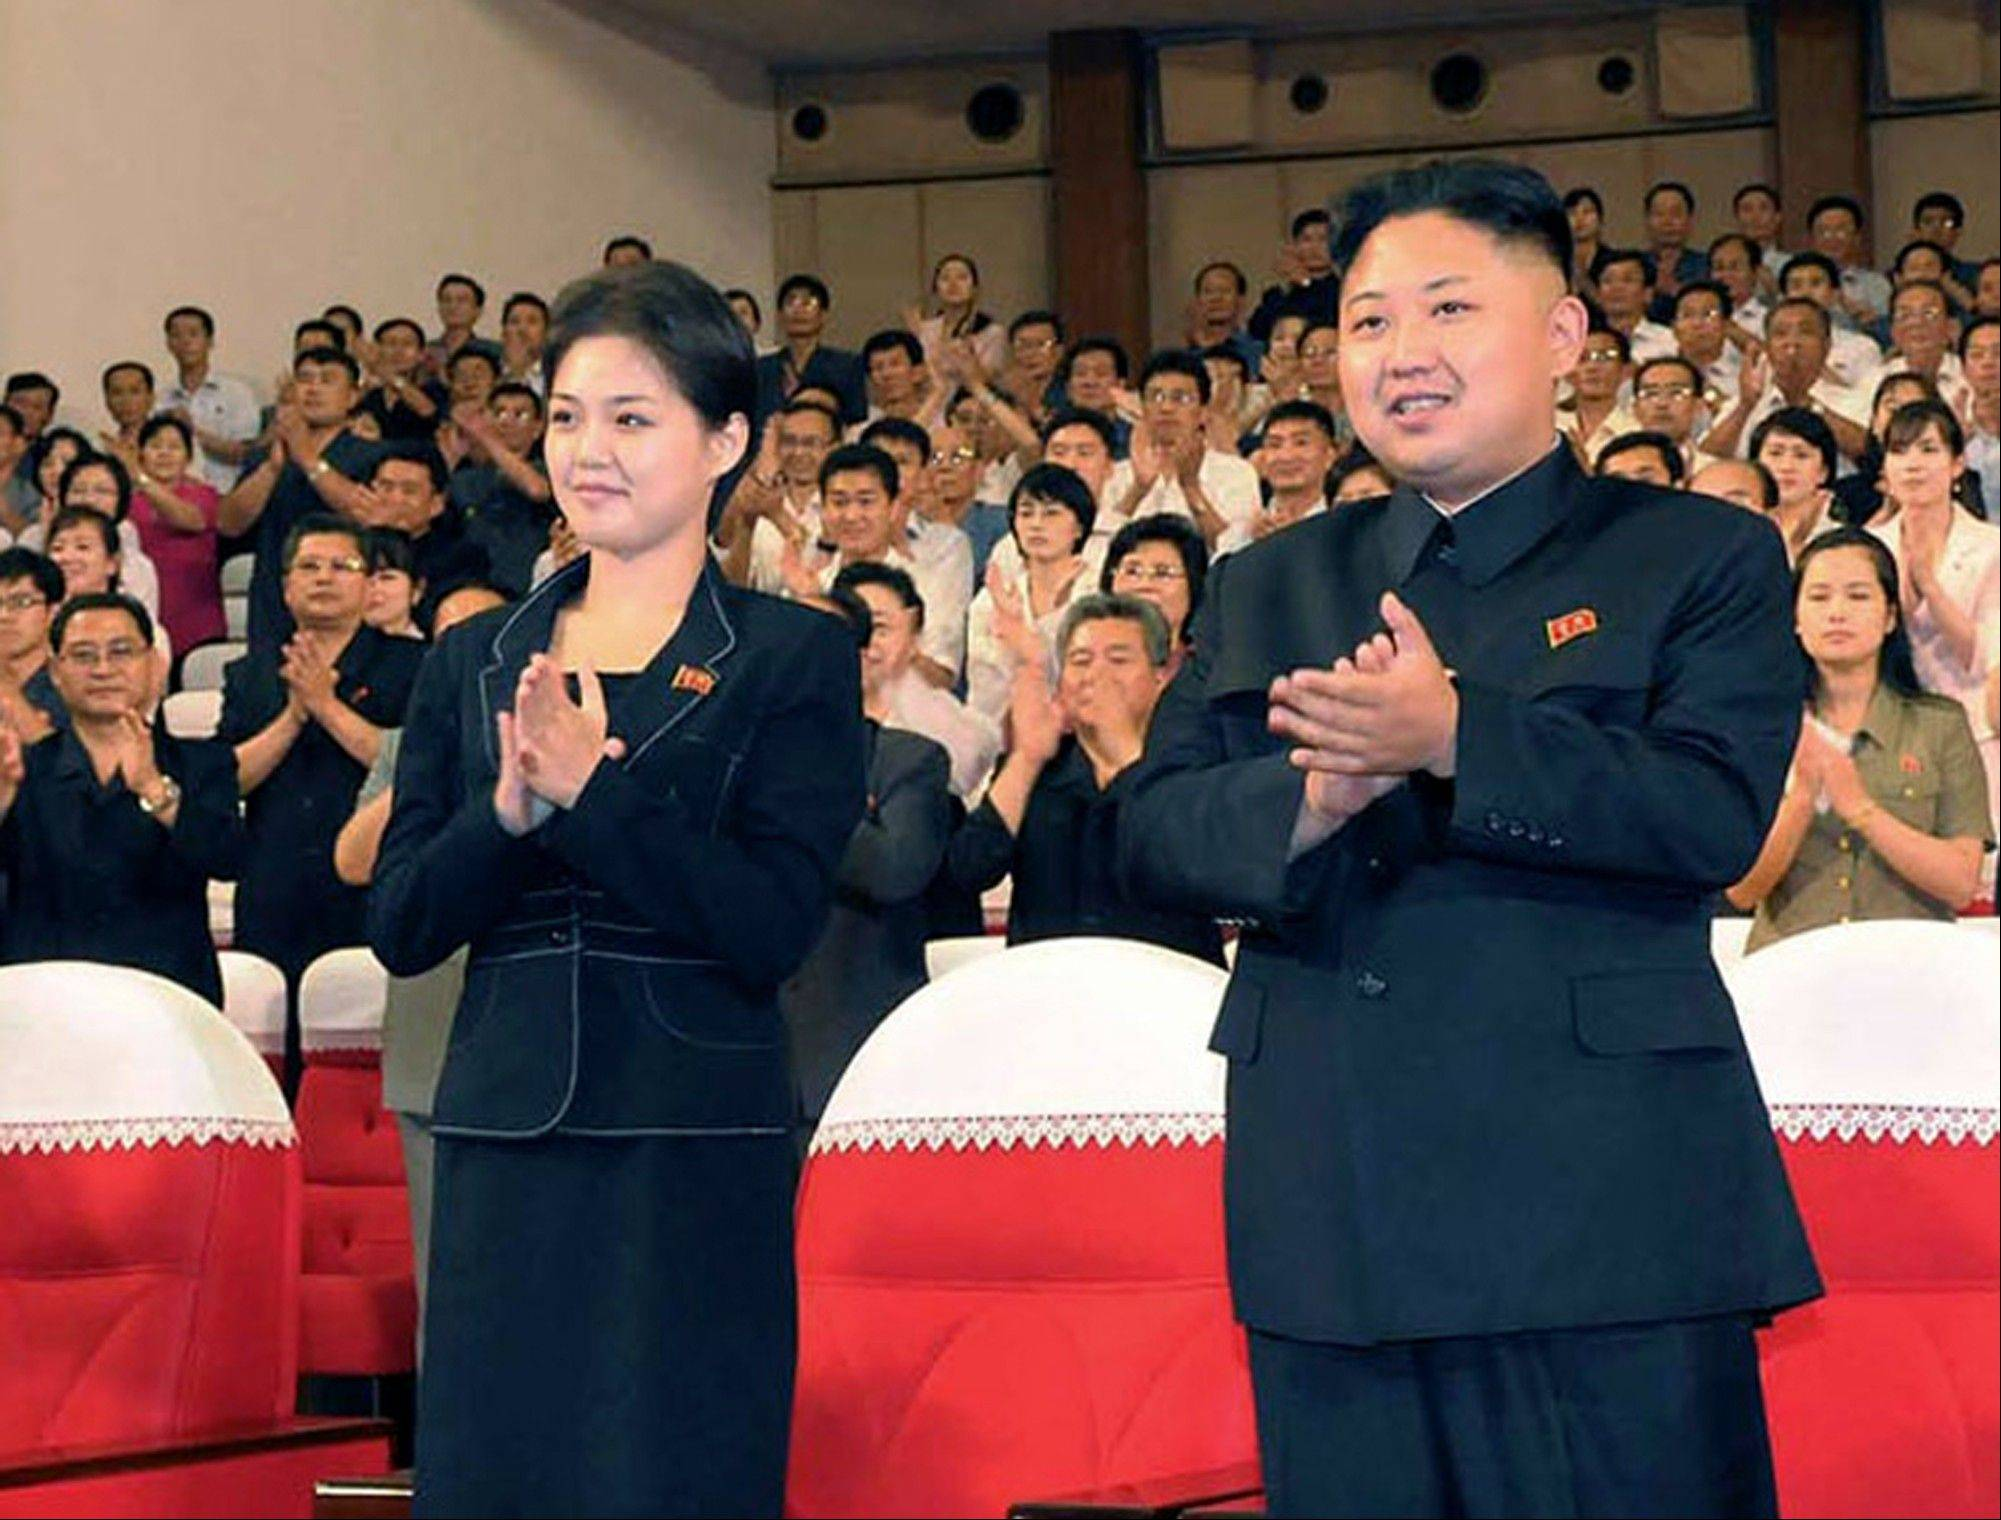 This file photo made available July 9, shows North Korean leader Kim Jong Un, right, and Ri Sol Ju as they applaud with others during a performance by North Korea�s new Moranbong band in Pyongyang, North Korea earlier in July